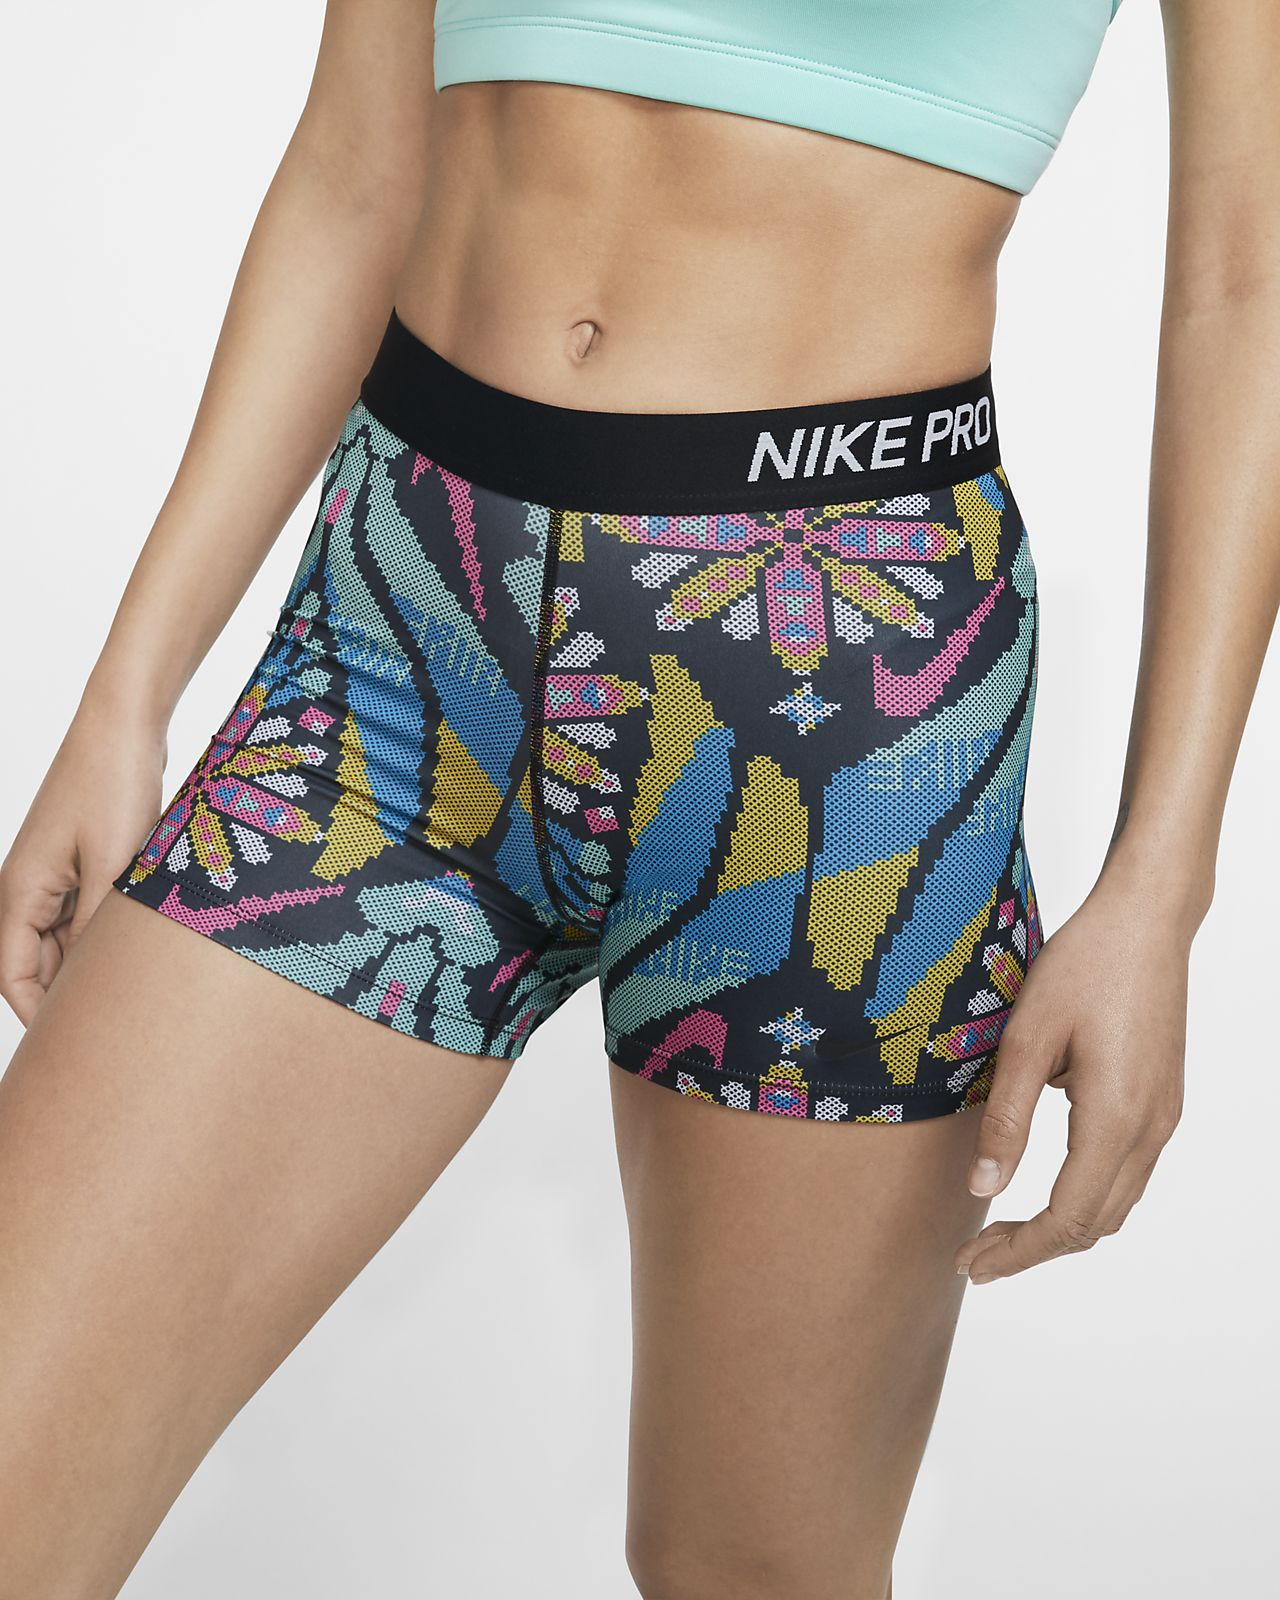 Nike Pro Women's 8cm (approx.) Printed Shorts